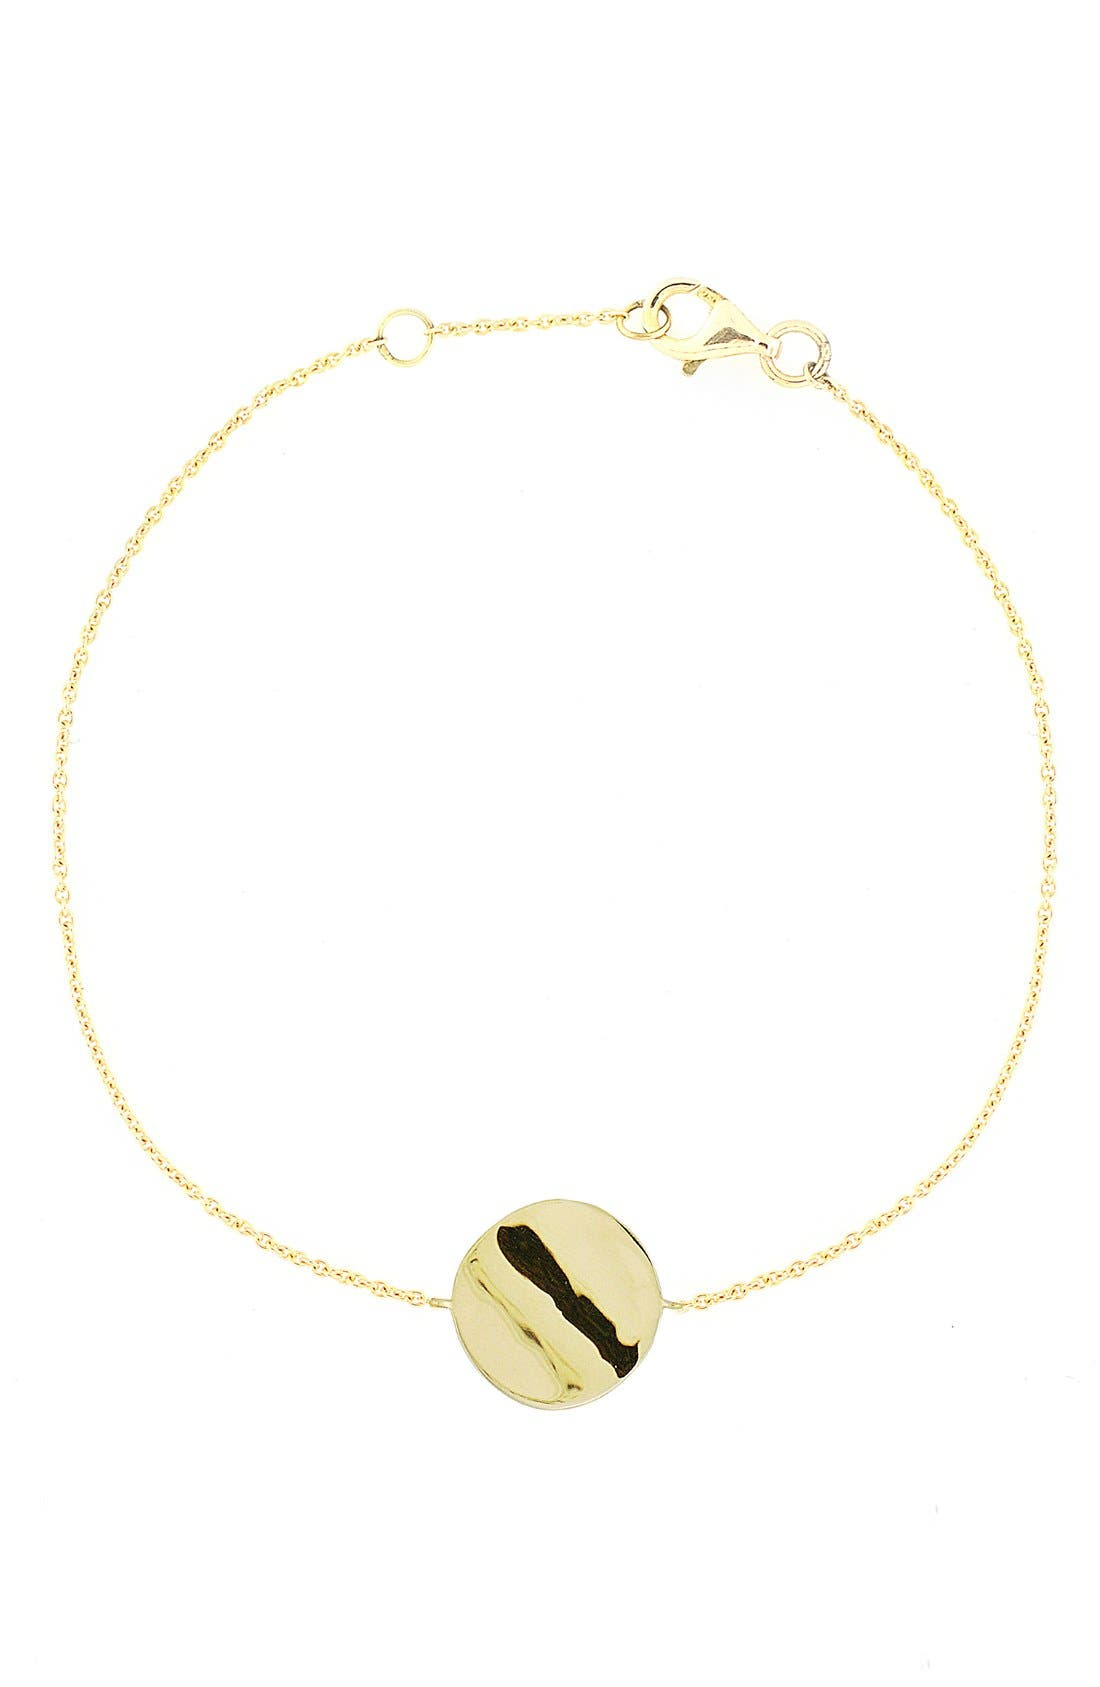 Alternate Image 1 Selected - Bony Levy Circle Station Bracelet (Nordstrom Exclusive)